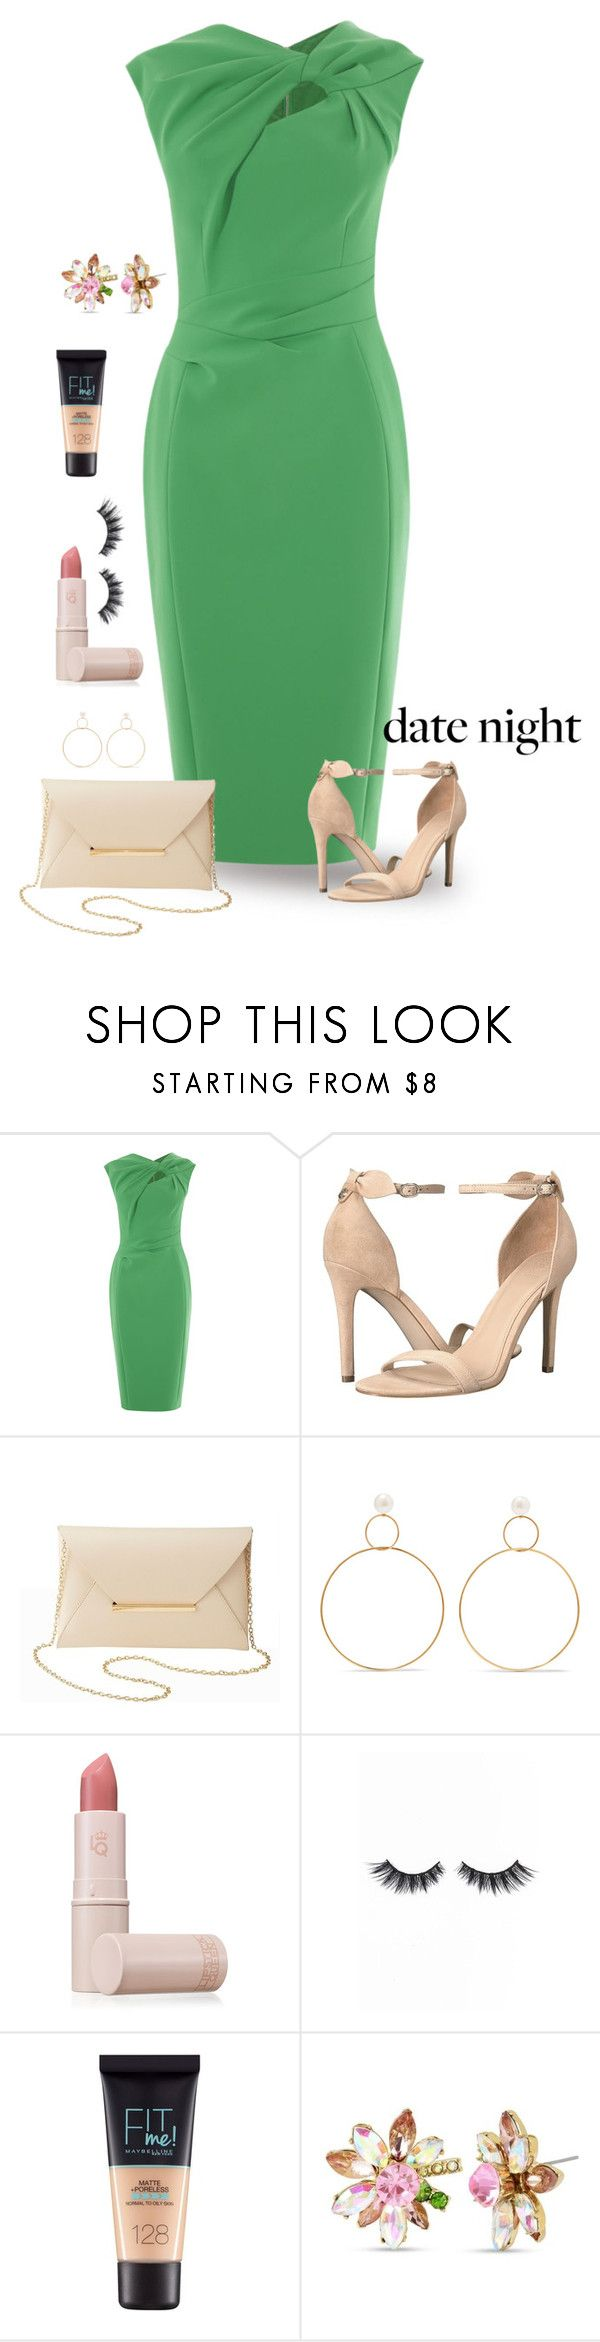 """Fresh"" by patricia-dimmick ❤ liked on Polyvore featuring GUESS, Charlotte Russe, Natasha Schweitzer, Lipstick Queen, Violet Voss, Maybelline, Betsey Johnson and summerdatenight"